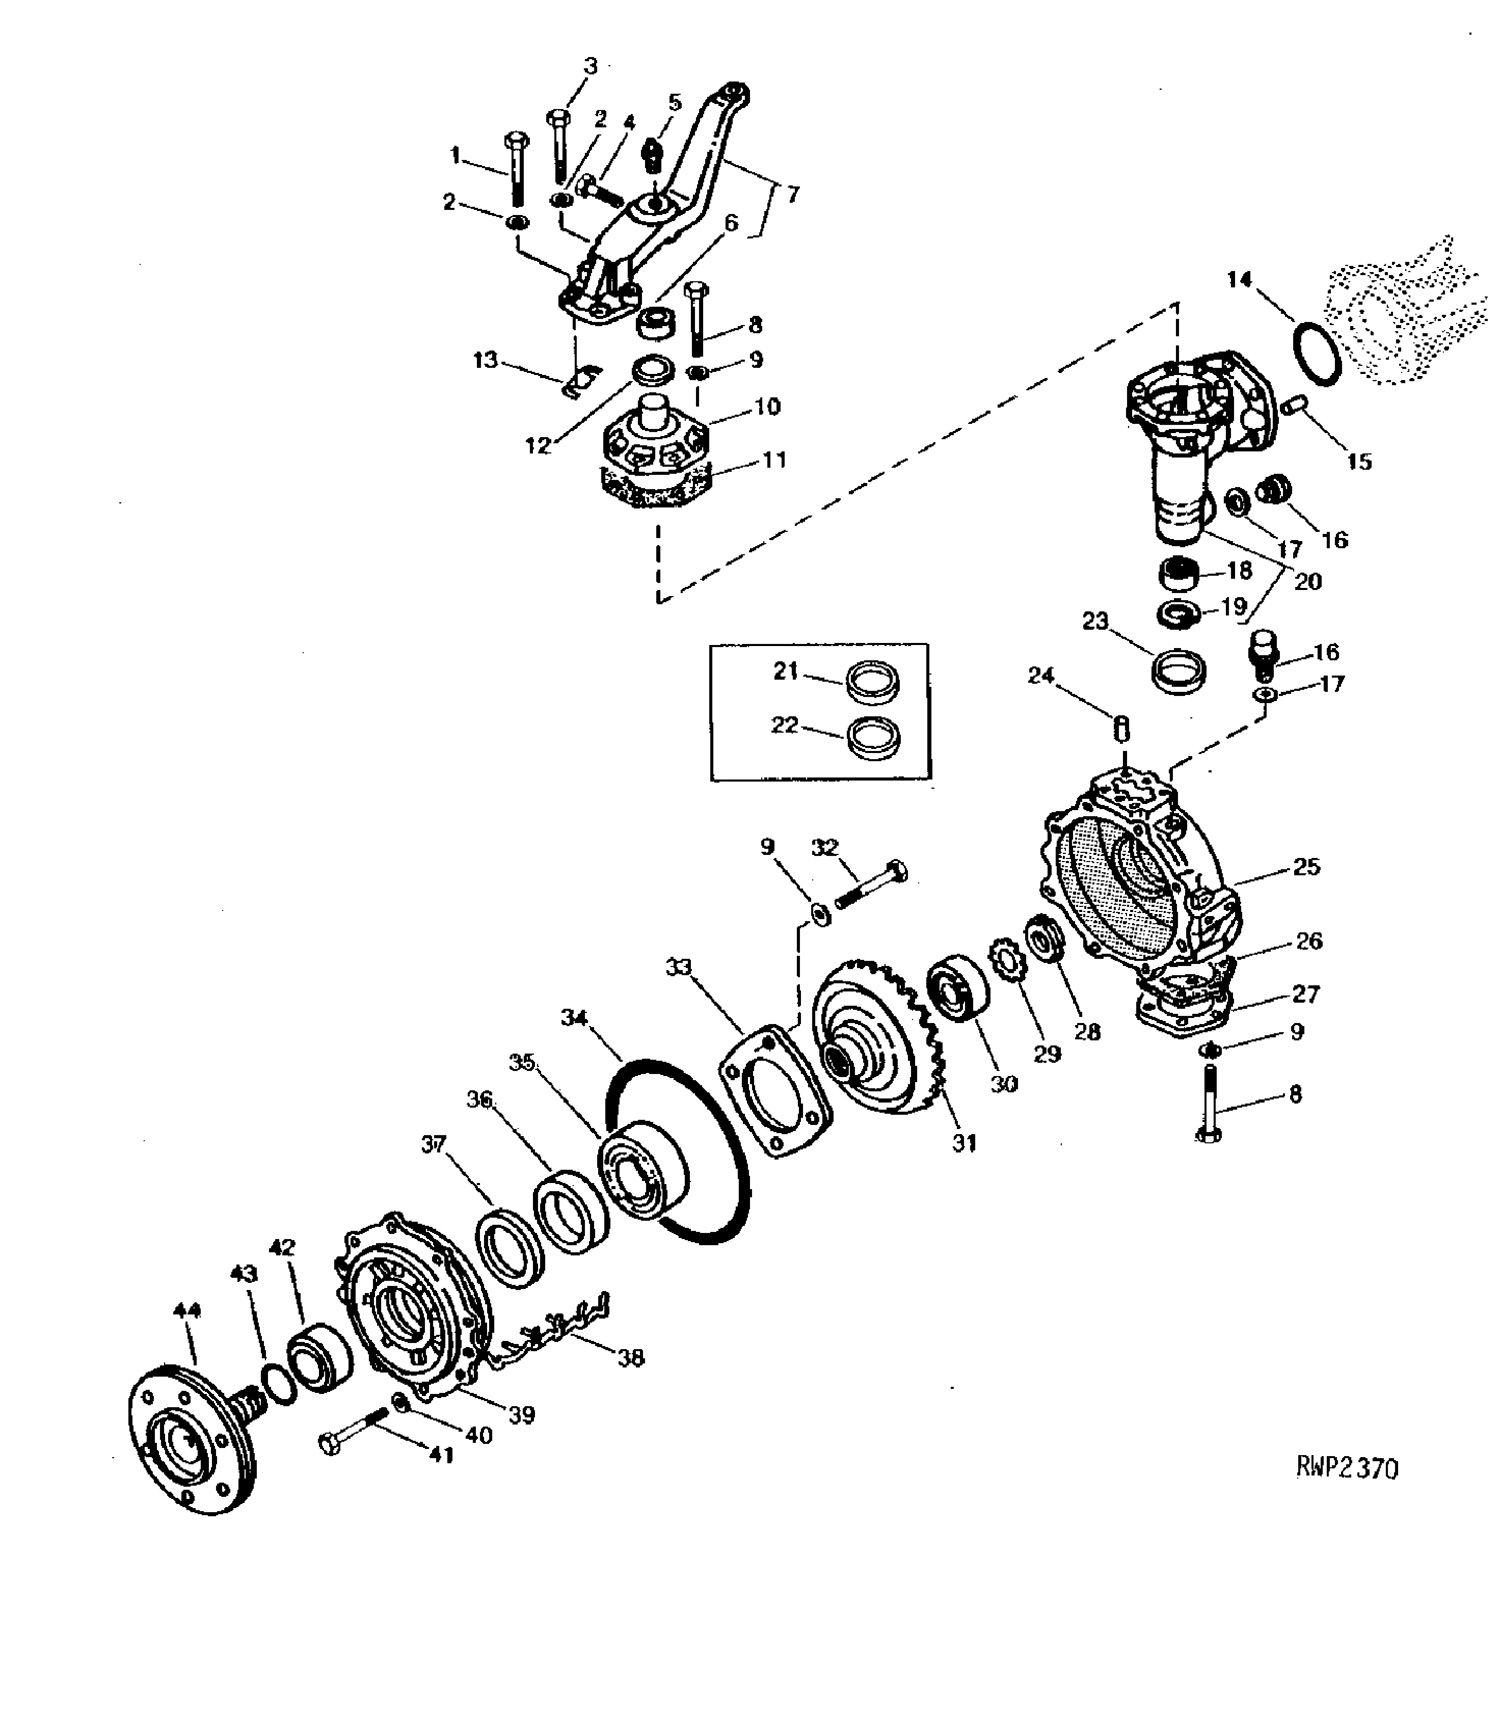 John Deere 2305 Front Light Kit Work furthermore John Deere 2520 Wiring Harness likewise Search as well John Deere 24t Baler Parts Diagram besides 3200 John Deere Telehandler Wiring Diagram. on john deere tractor 2305 specs